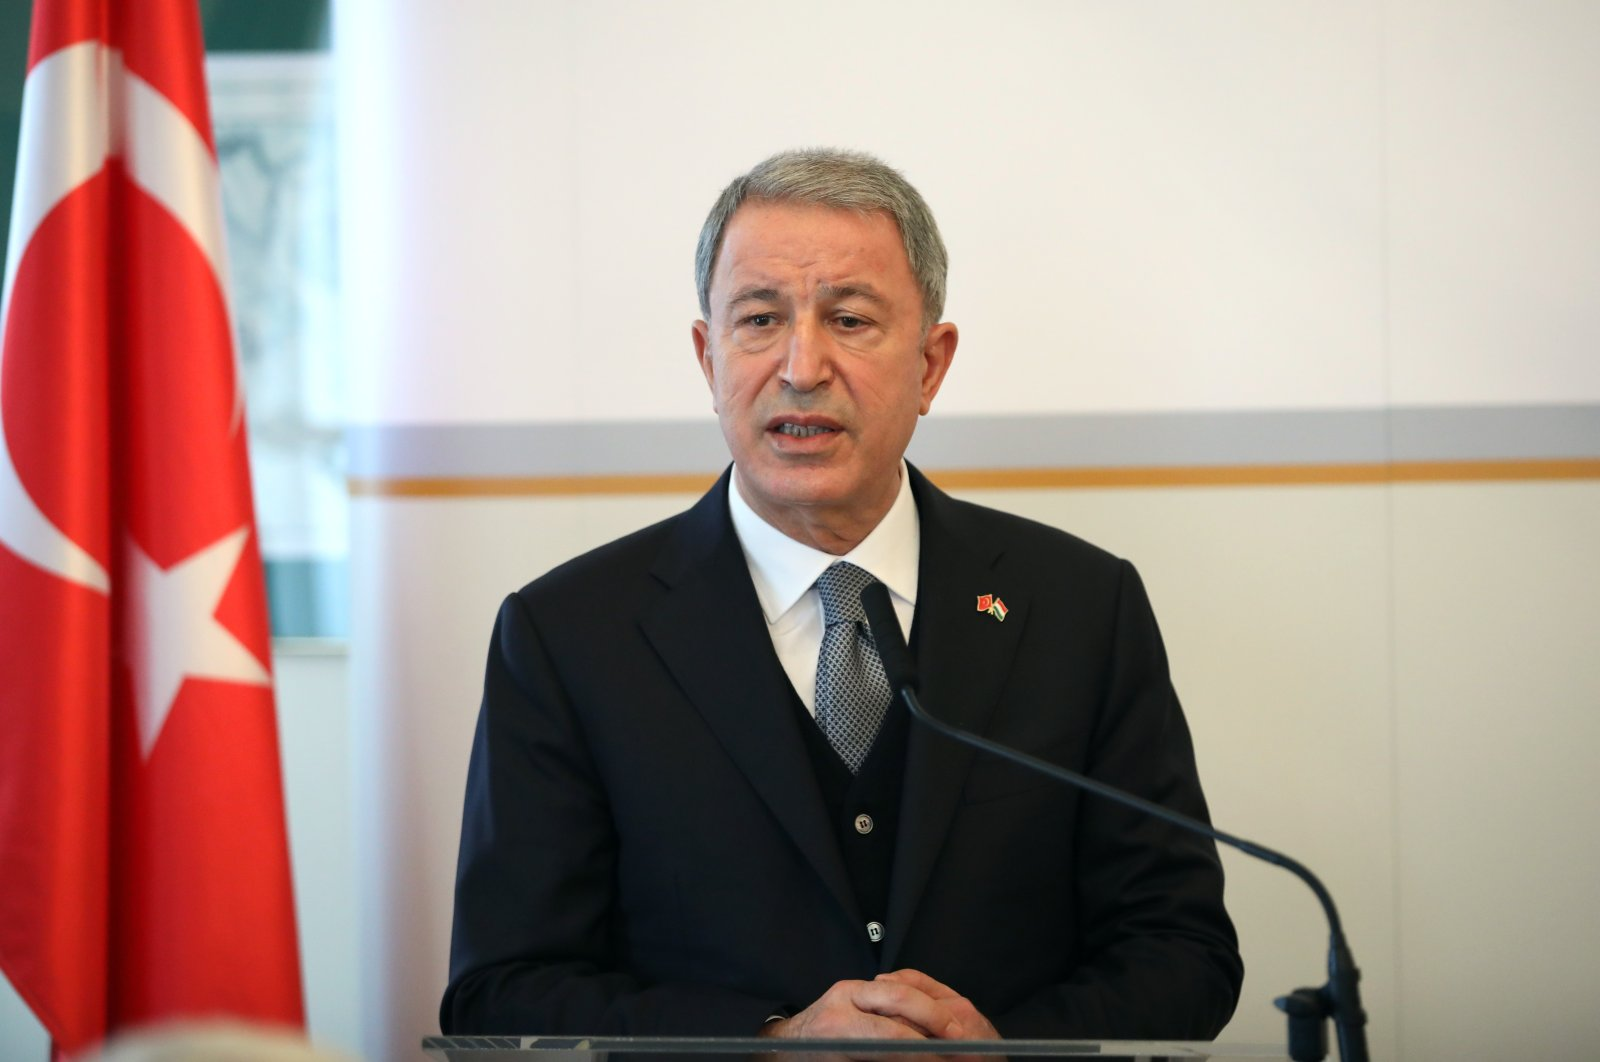 Defense Minister Hulusi Akar during a press conference in Budapest, Hungary, Feb. 3, 2021. (AA Photo)